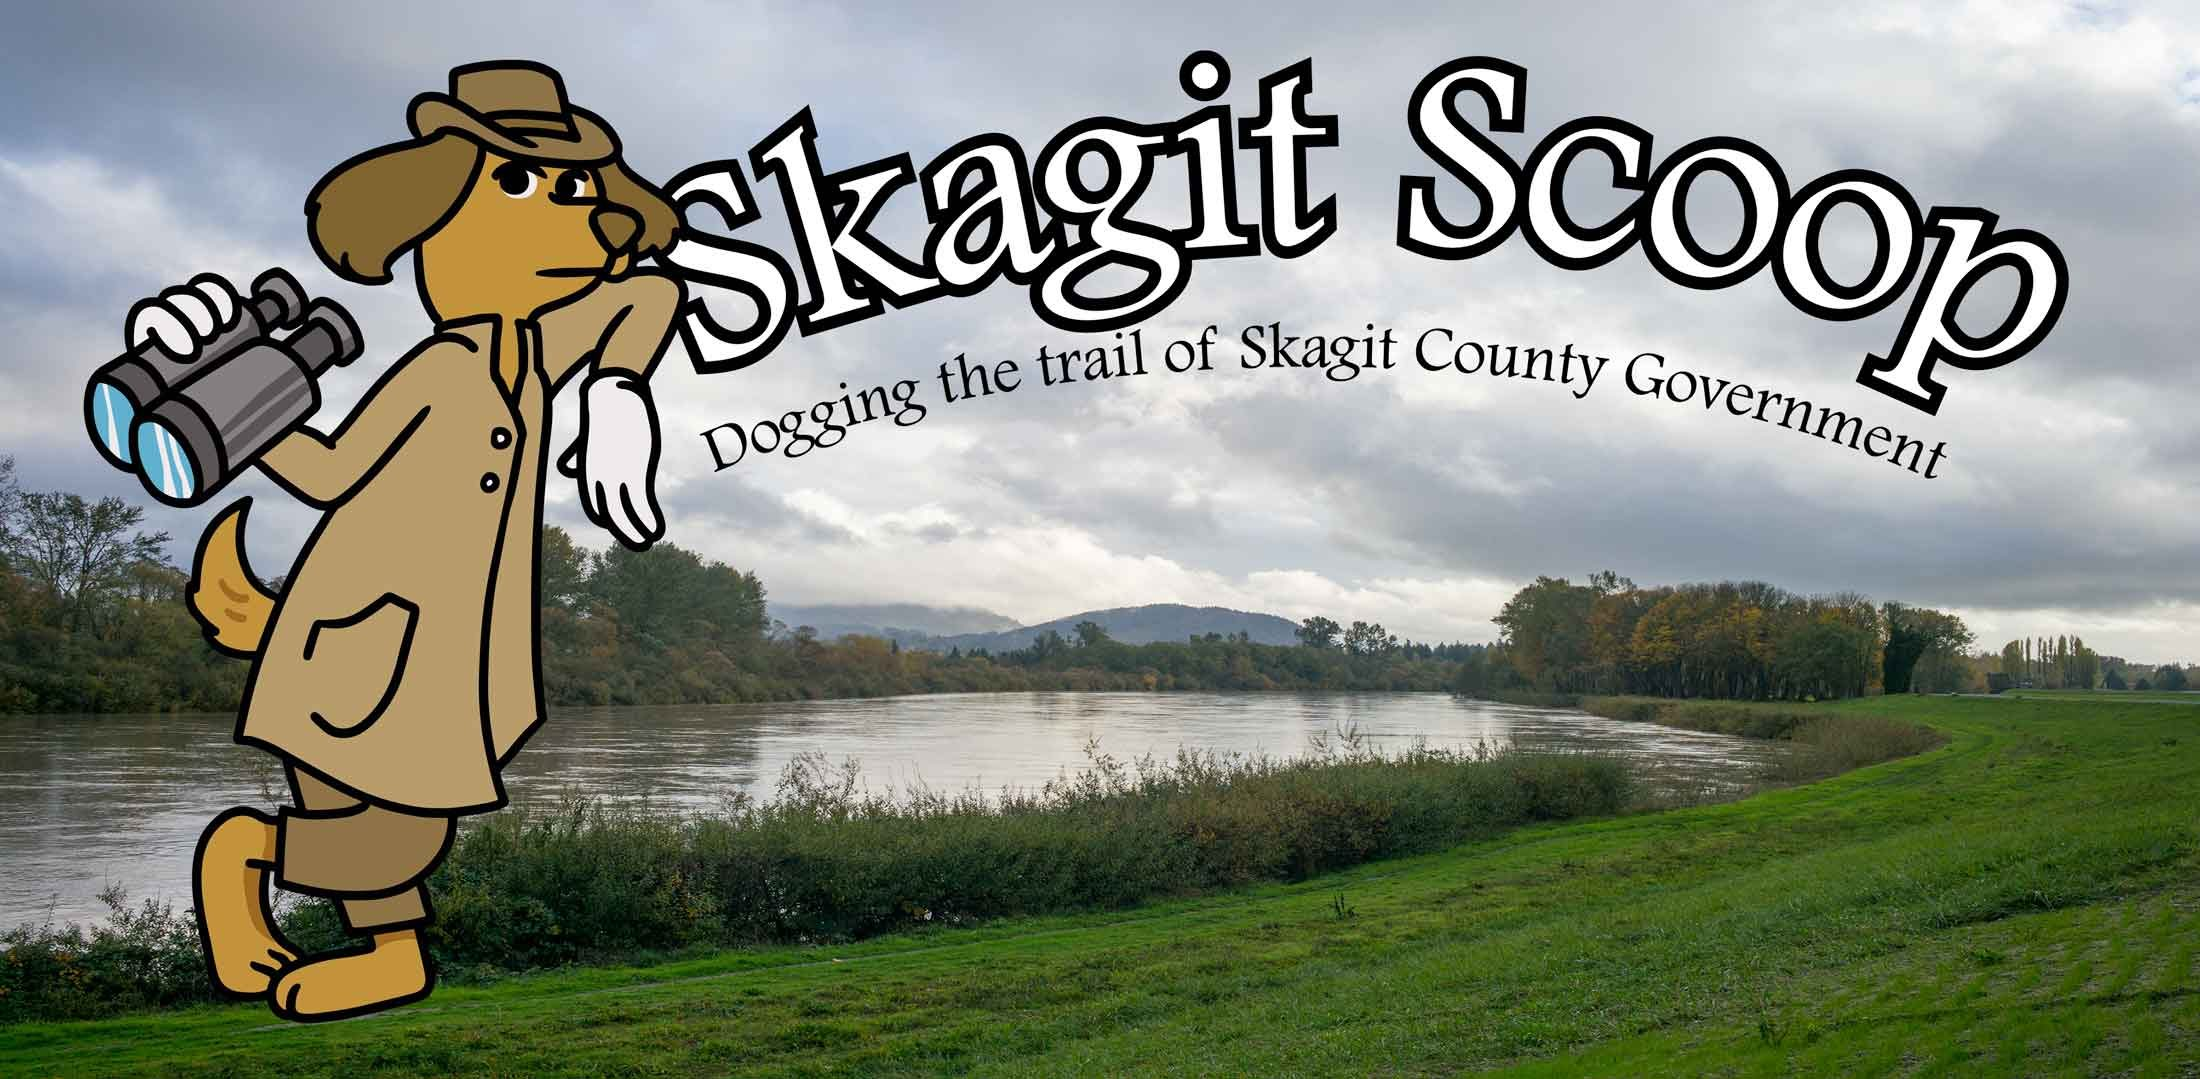 Skagit Scoop